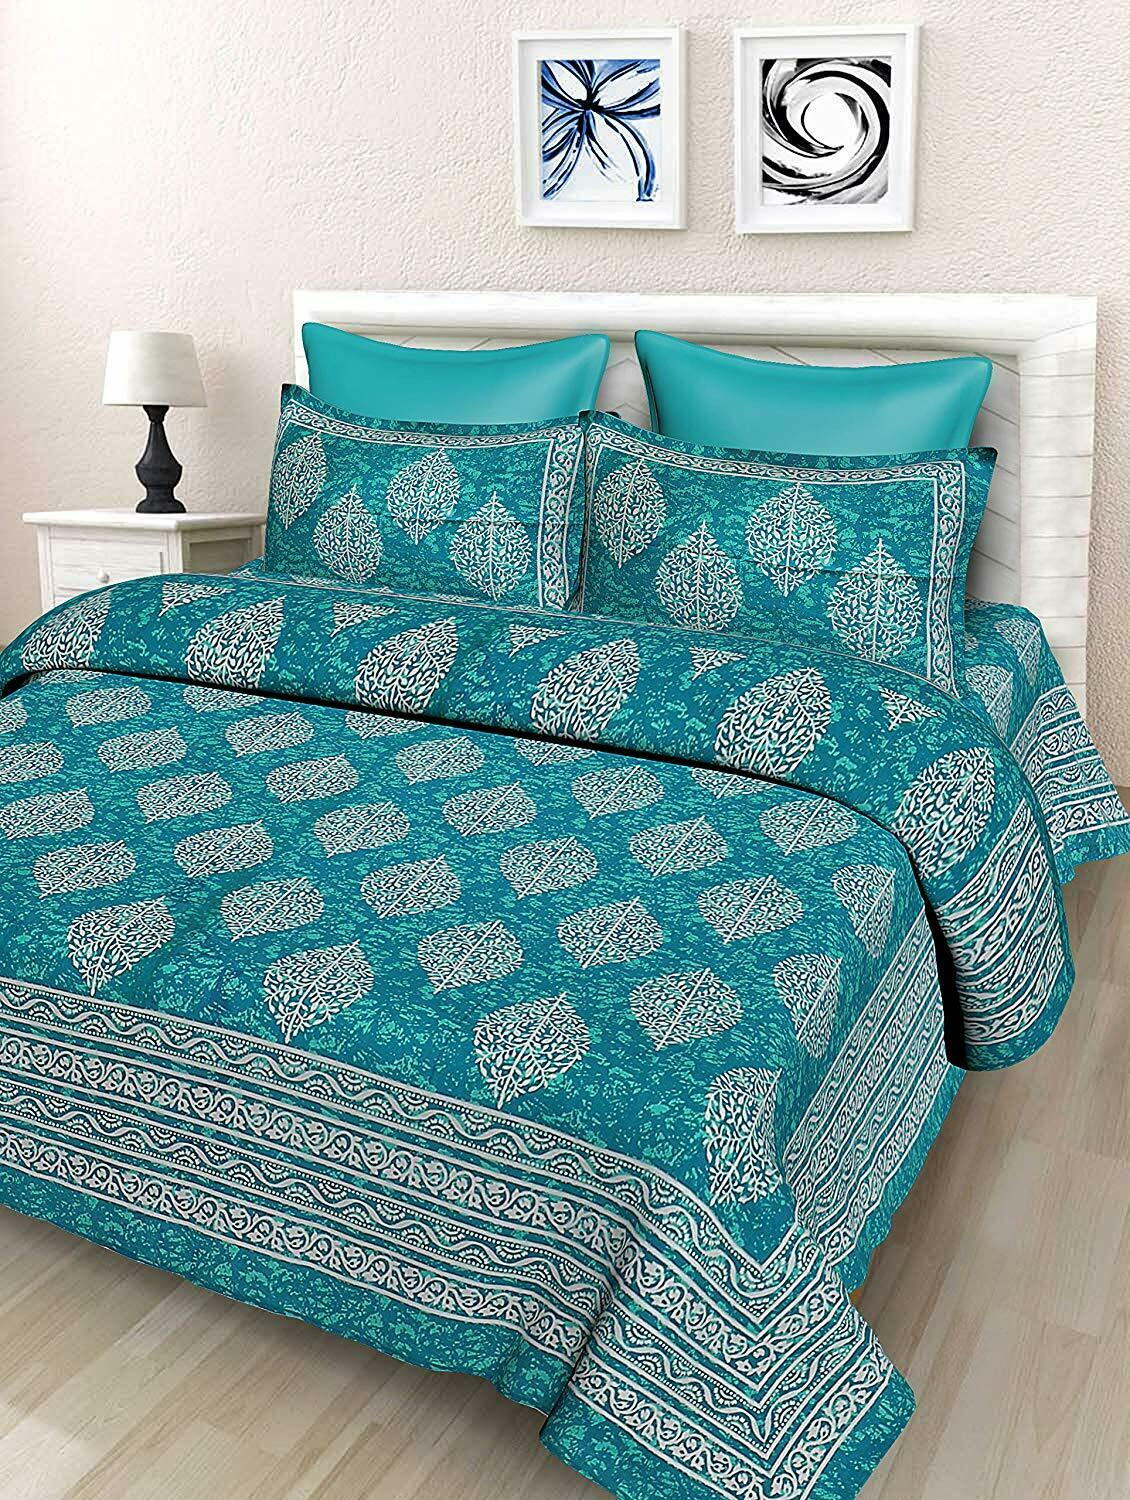 Traditional Cotton Sky bluee-Grey Paisley Print  Spread Bed Sheet With 2 Pillow